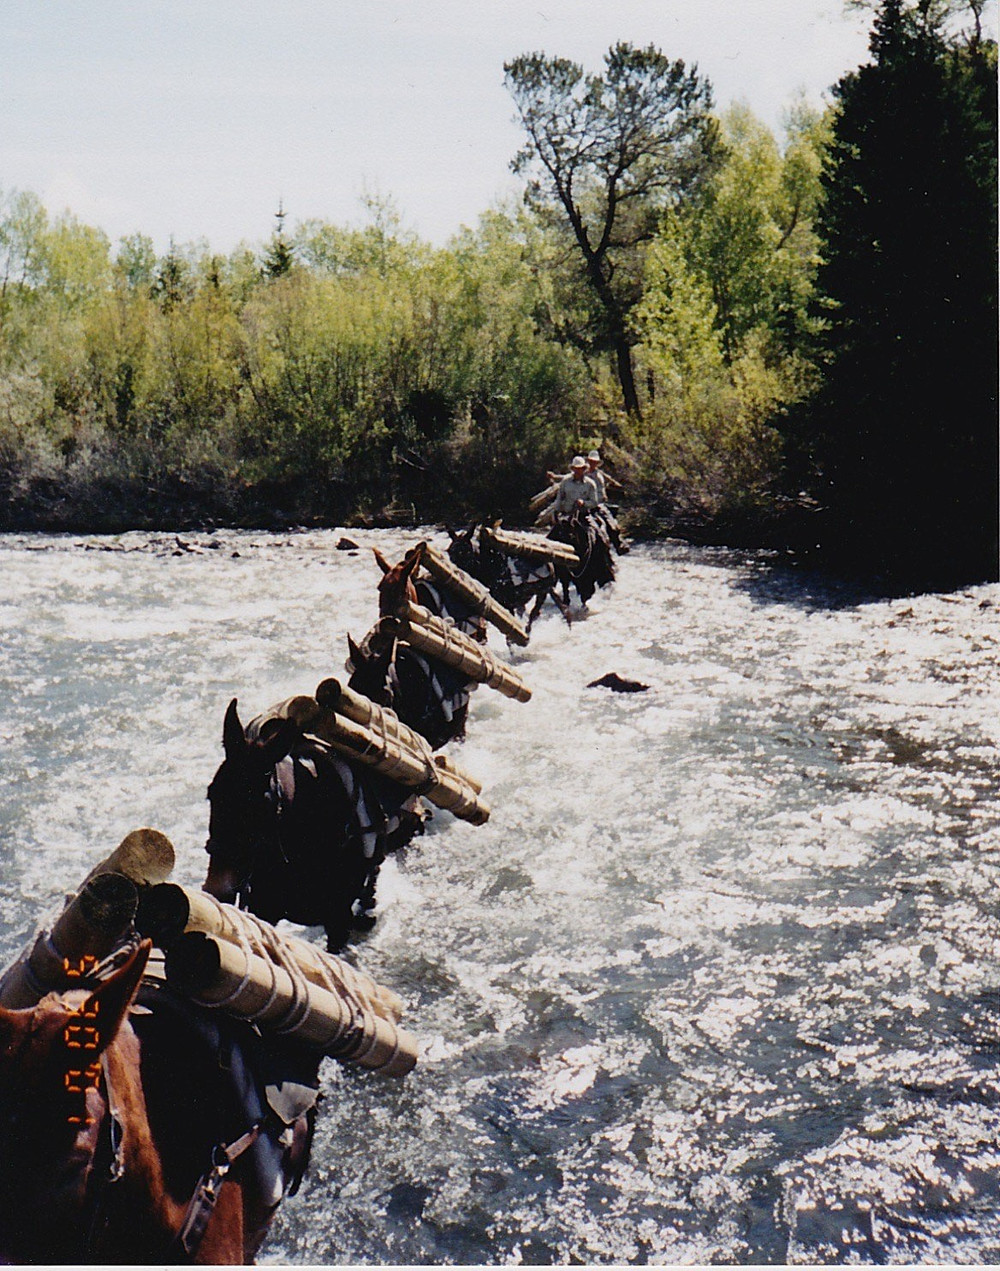 River Crossing - Pack string